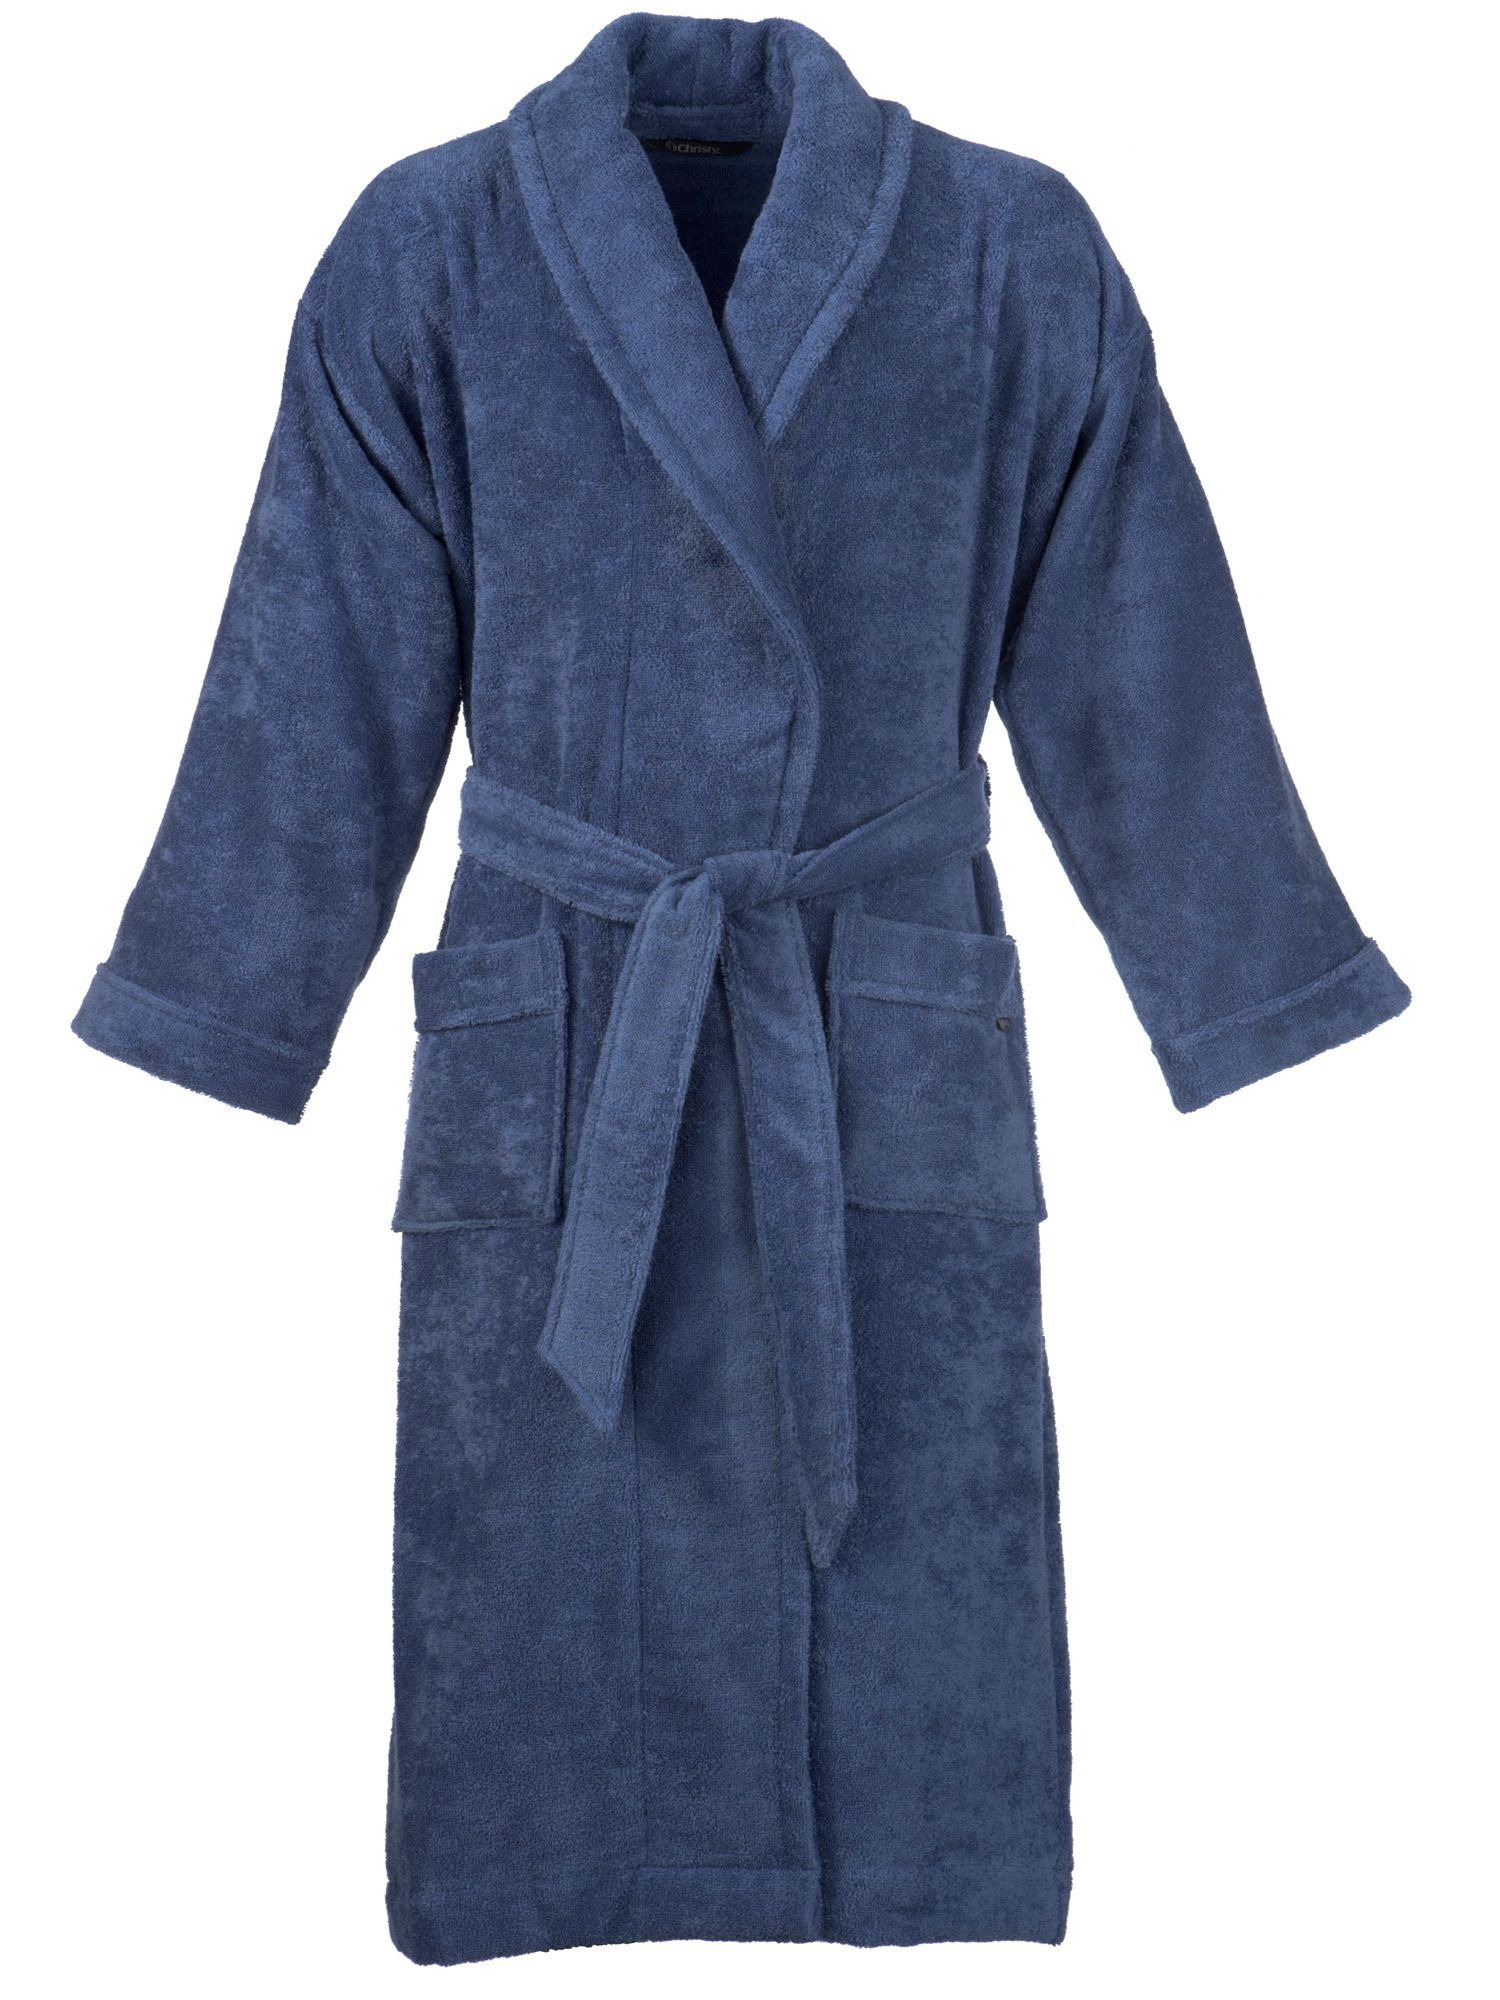 Christy Supreme deep sea bath robe large/extra large